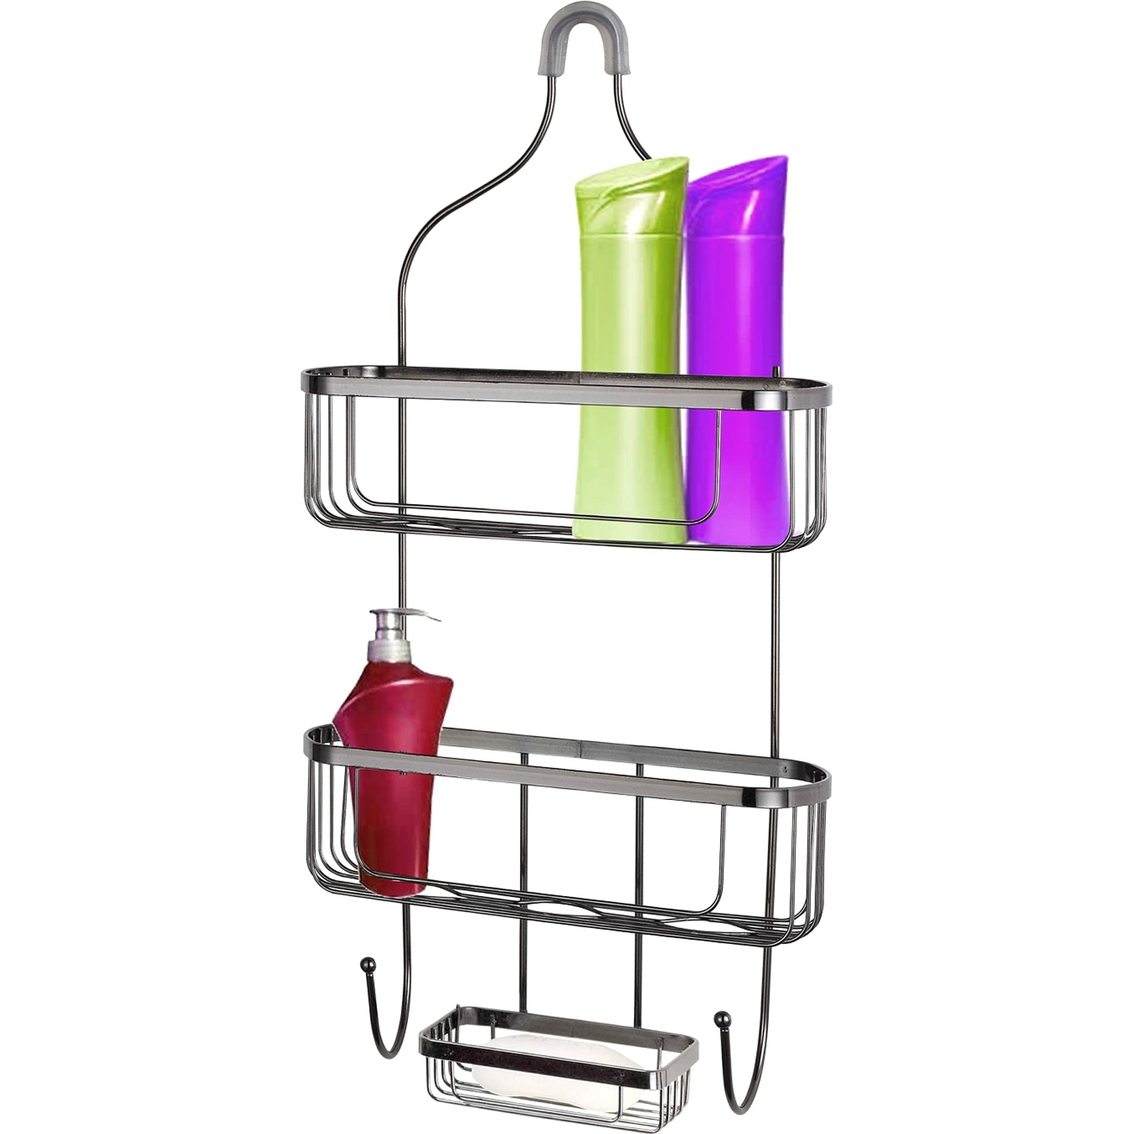 Home Basics Large Black Shower Caddy | Tub & Shower Accessories ...